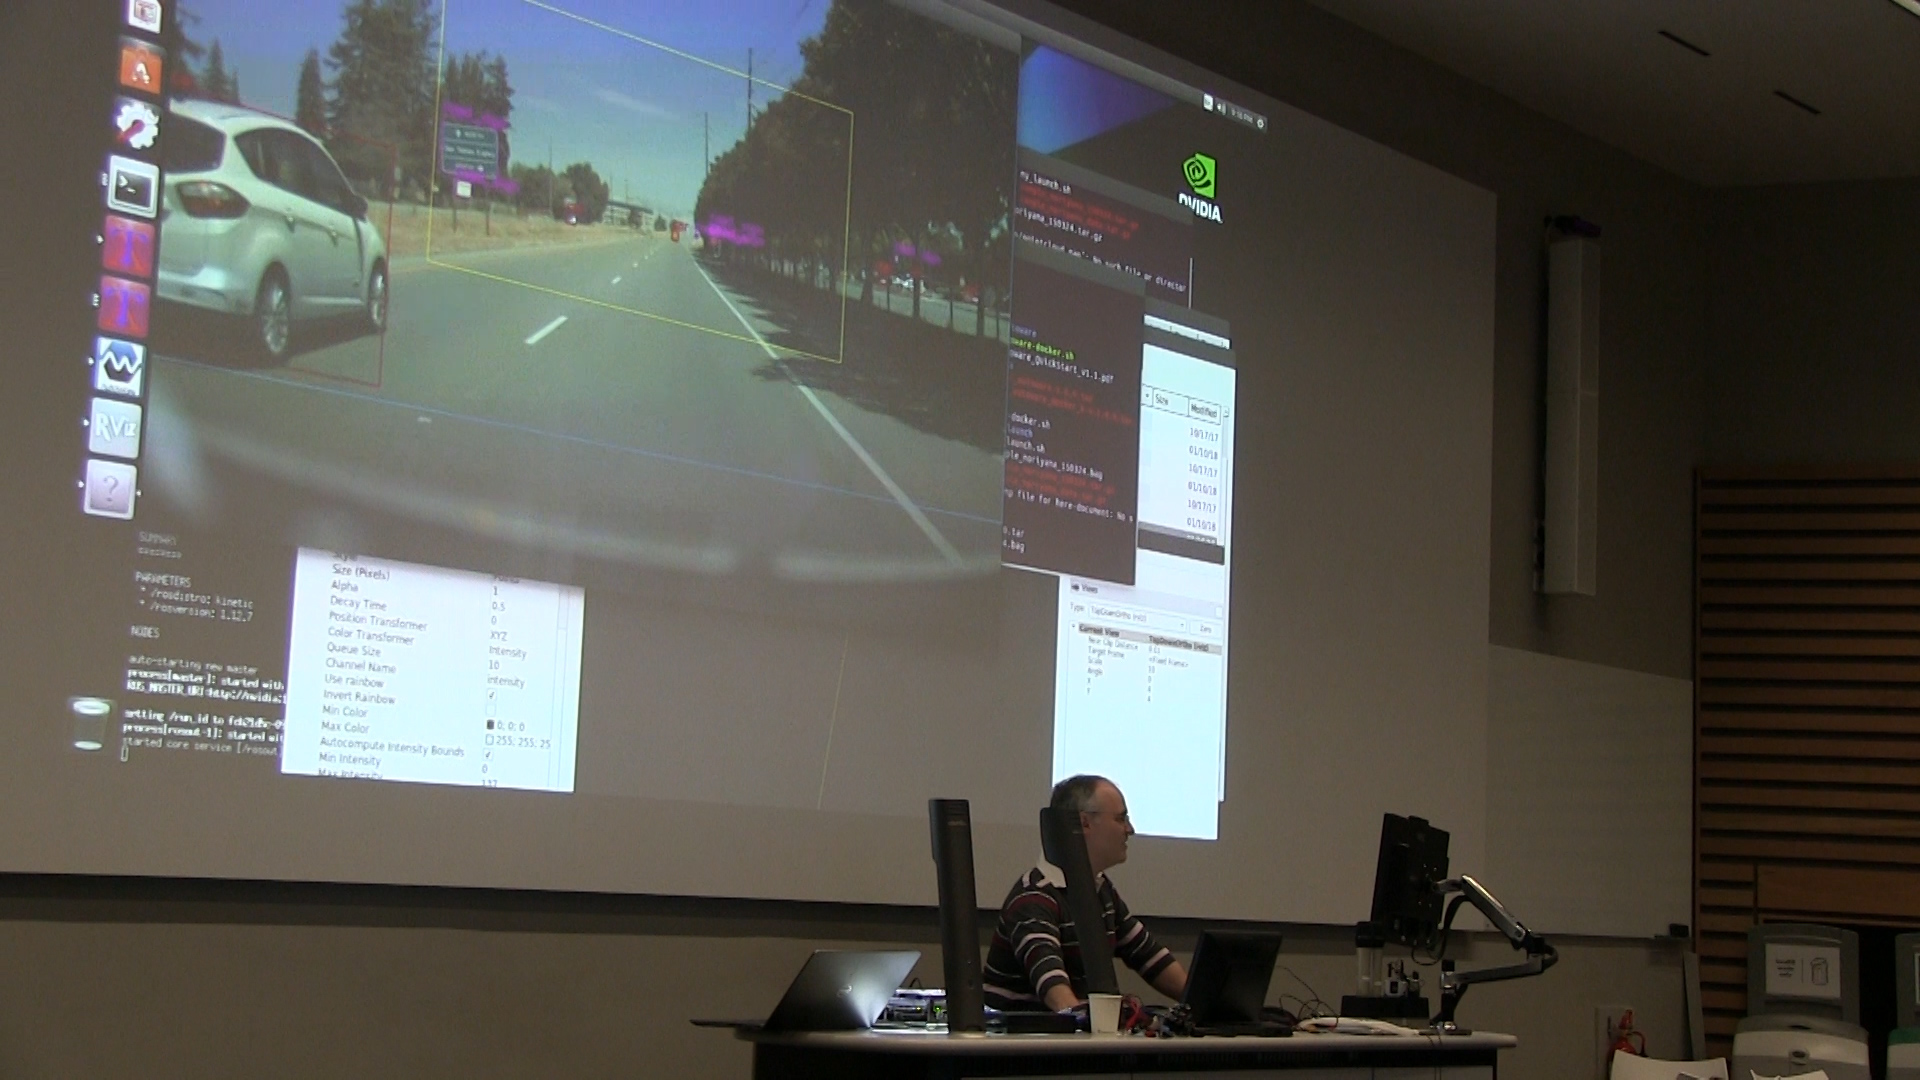 A demonstration of autonomous vehicle technology during one of the breakout sessions